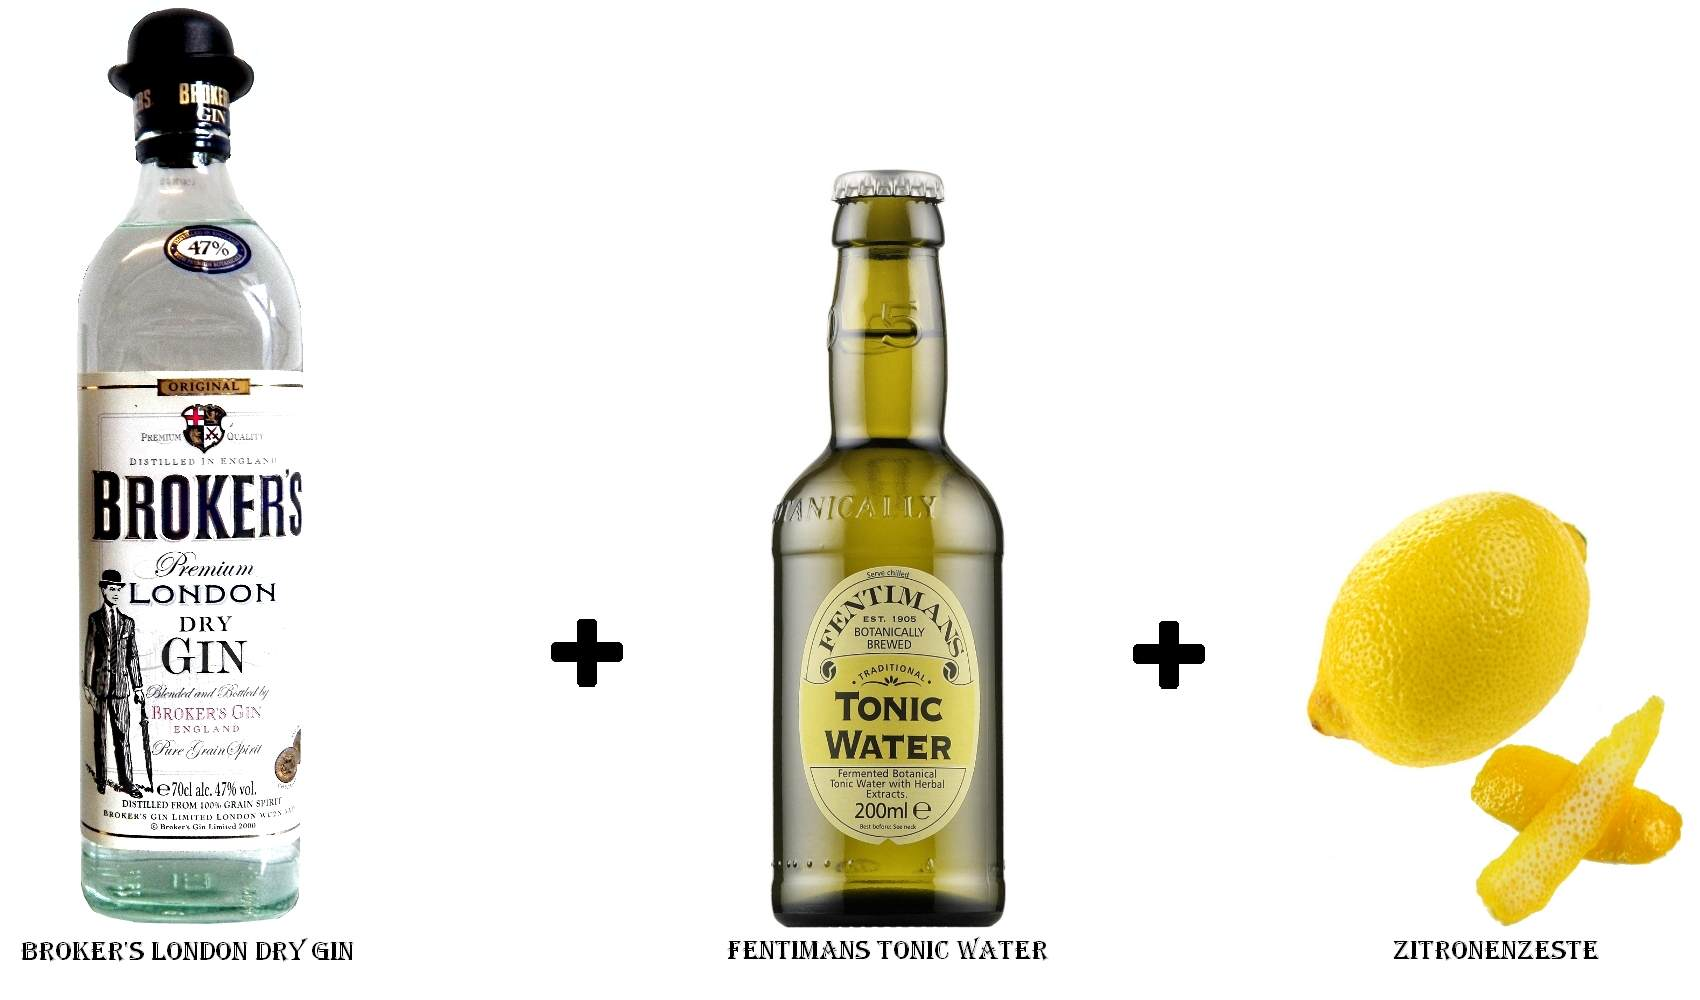 Broker's London Dry Gin + Fentimans Tonic Water + Zitronenzeste